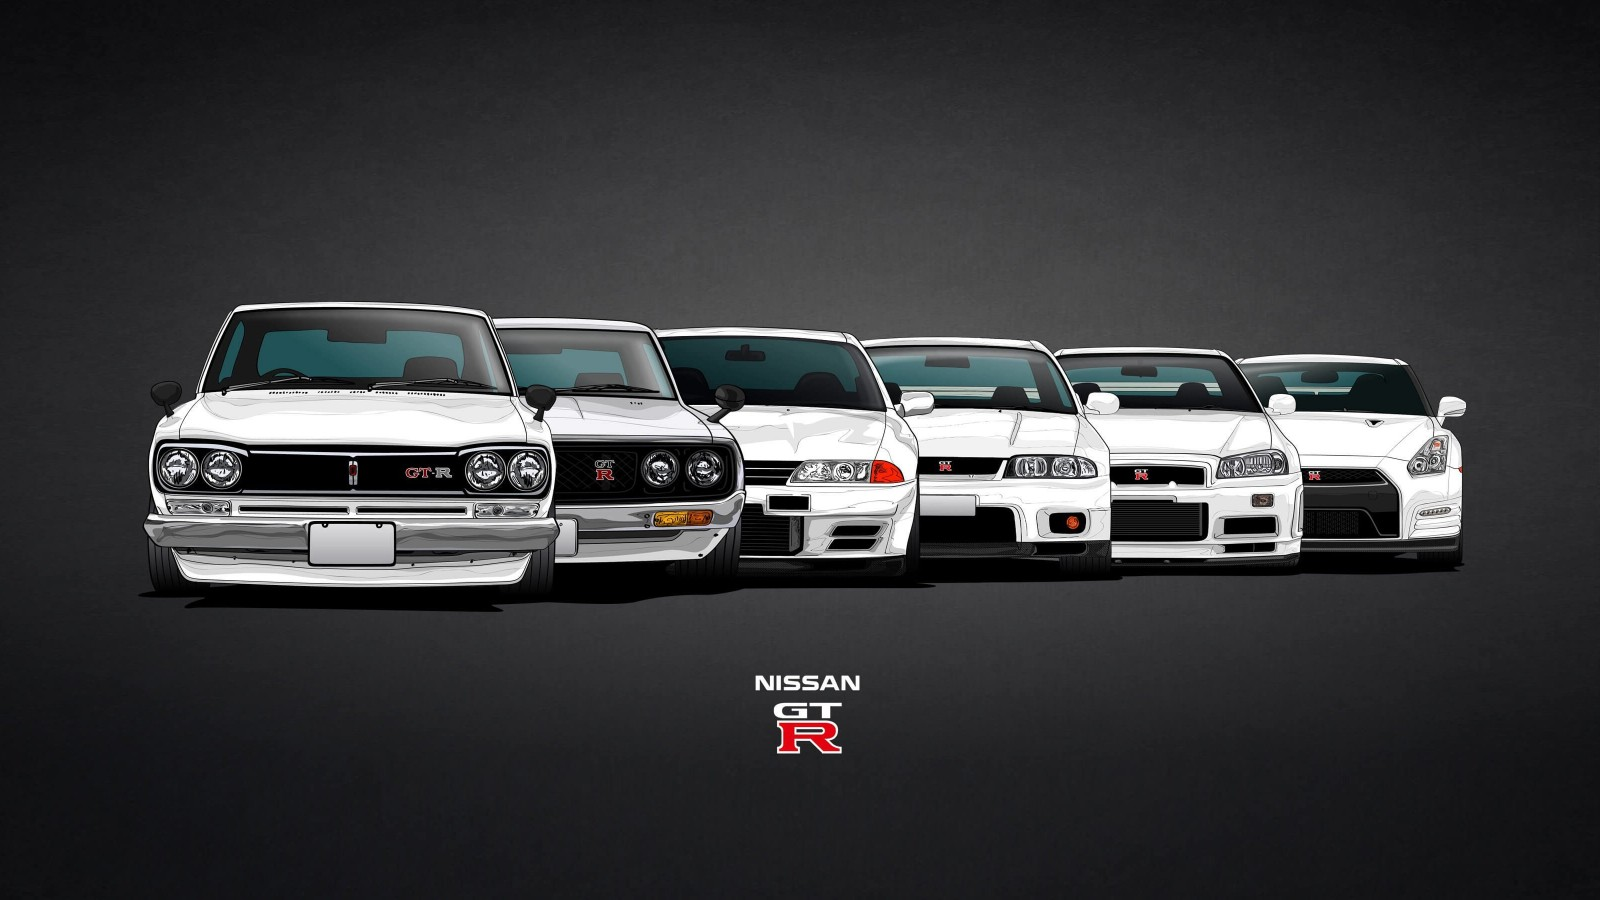 Nissan Skyline GT-R Evolution Wallpaper for Desktop 1600x900